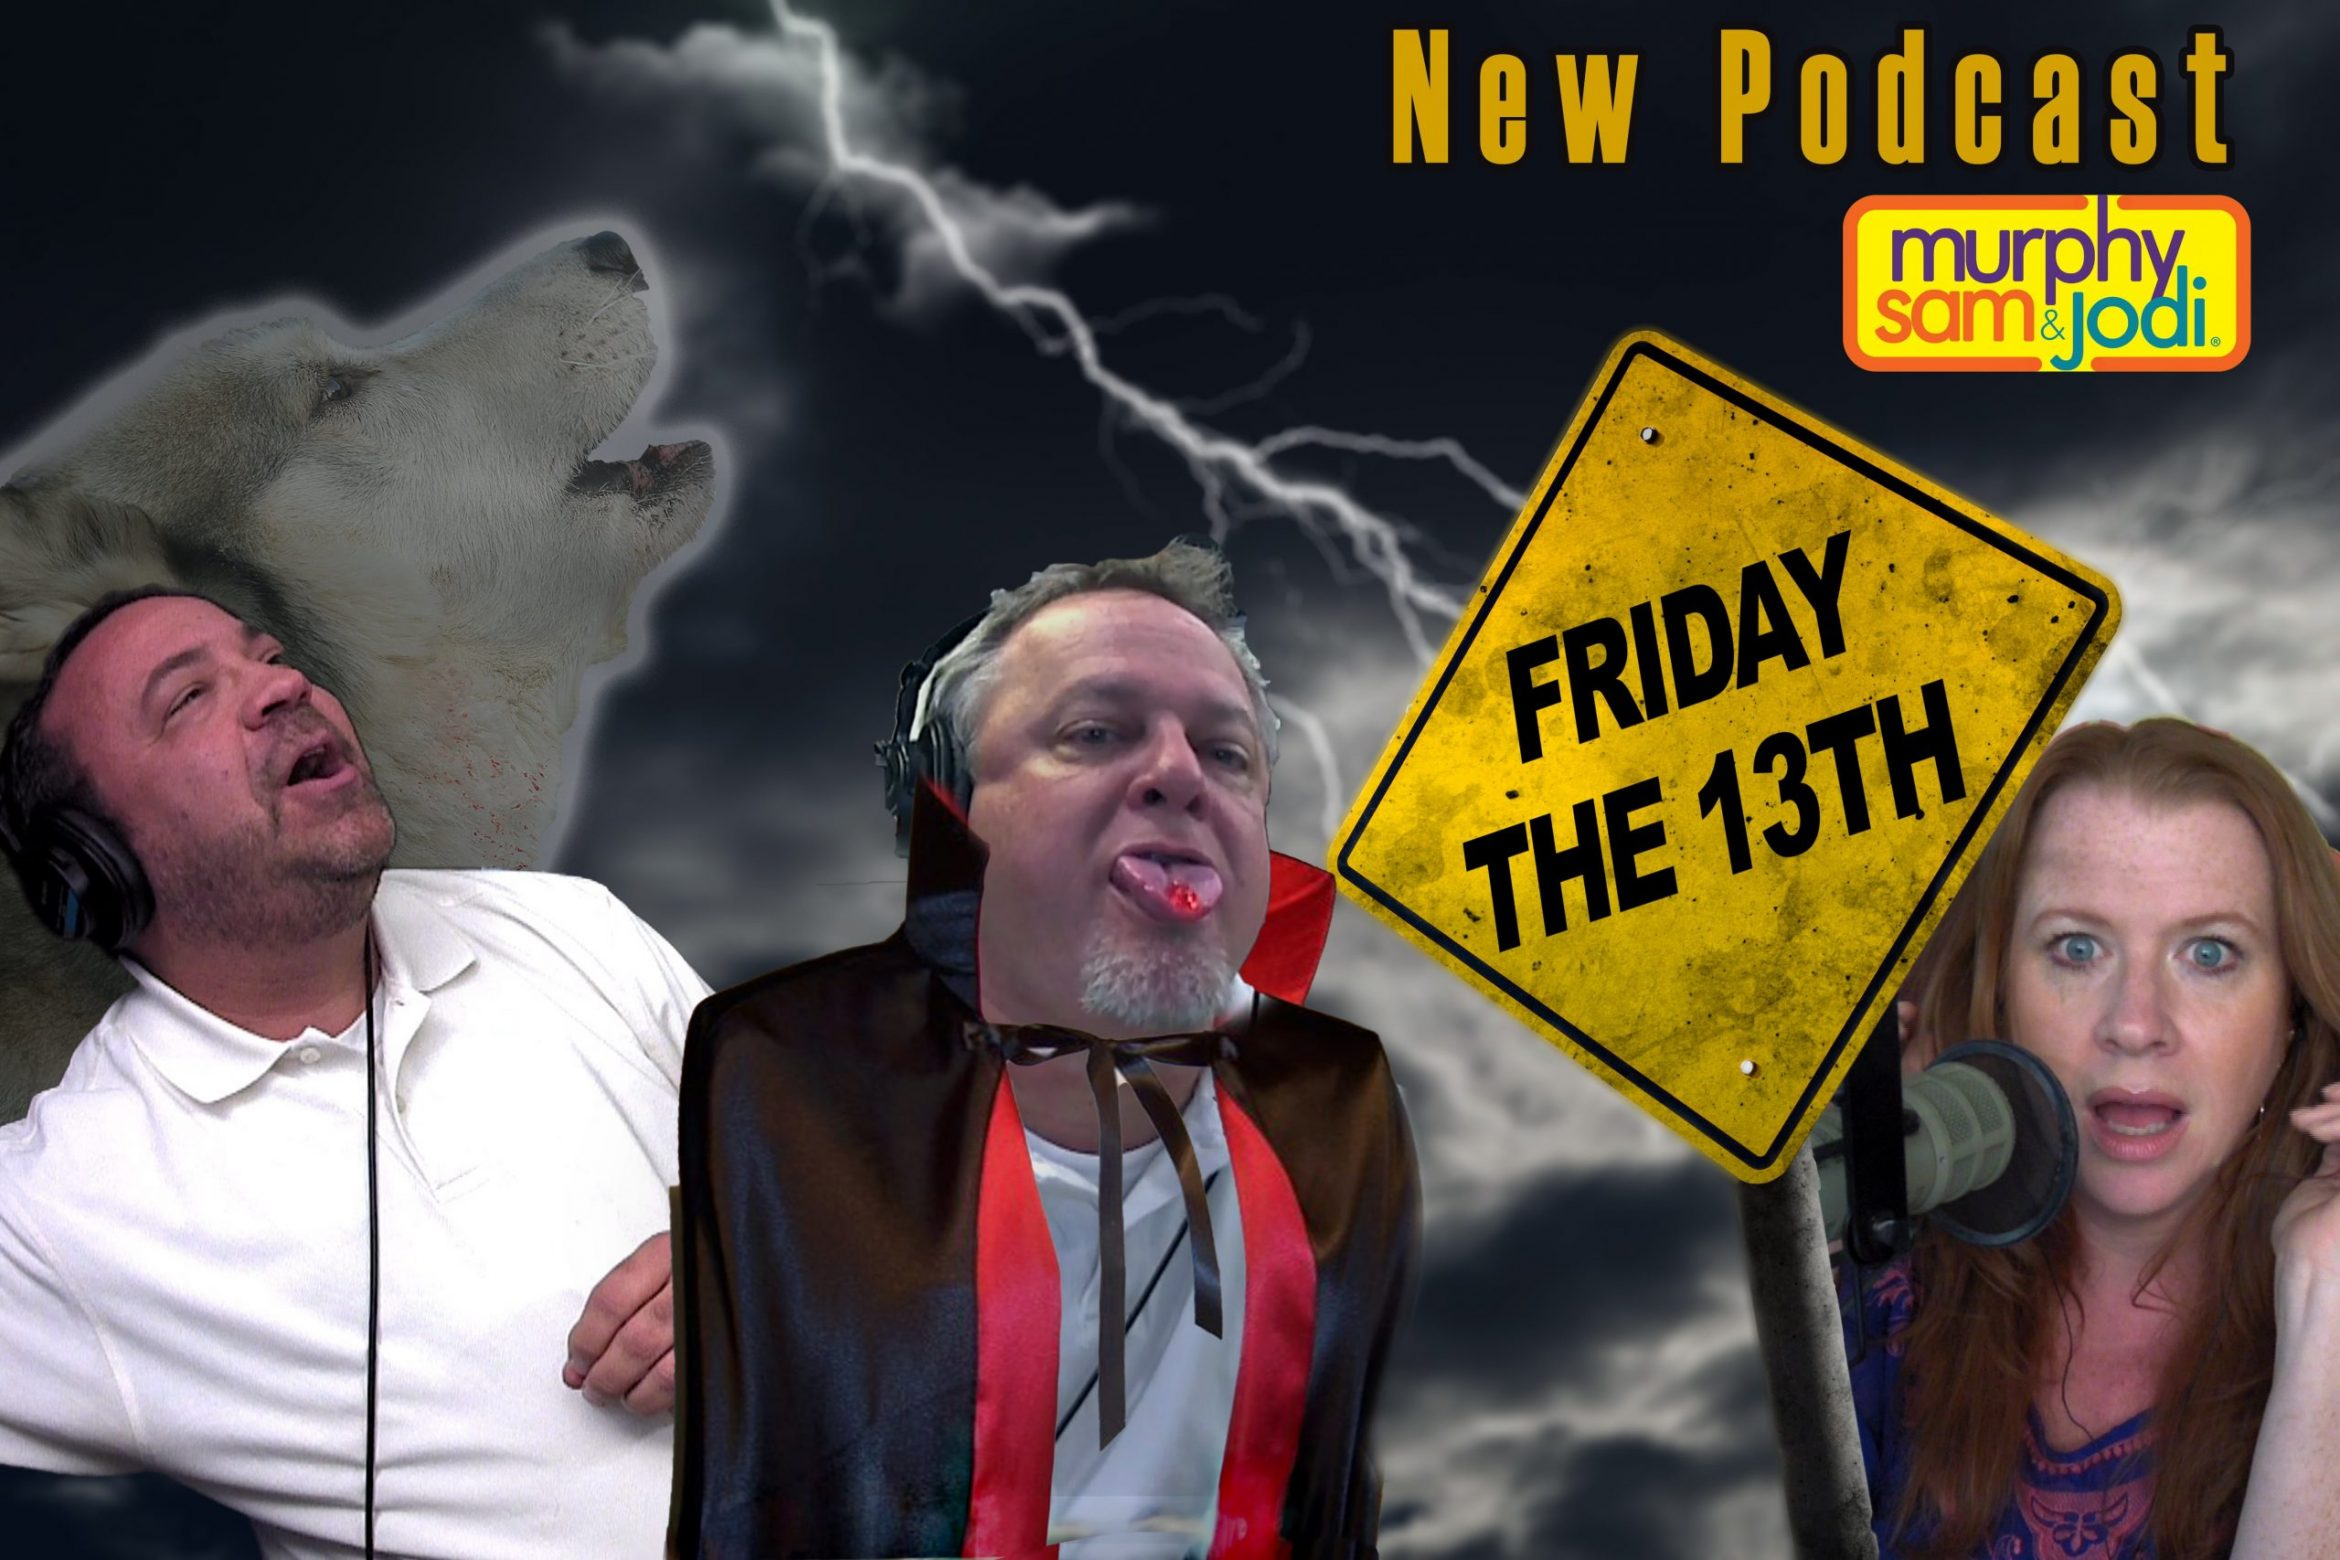 PODCAST: Friday the 13th – SUPERSTITIONS